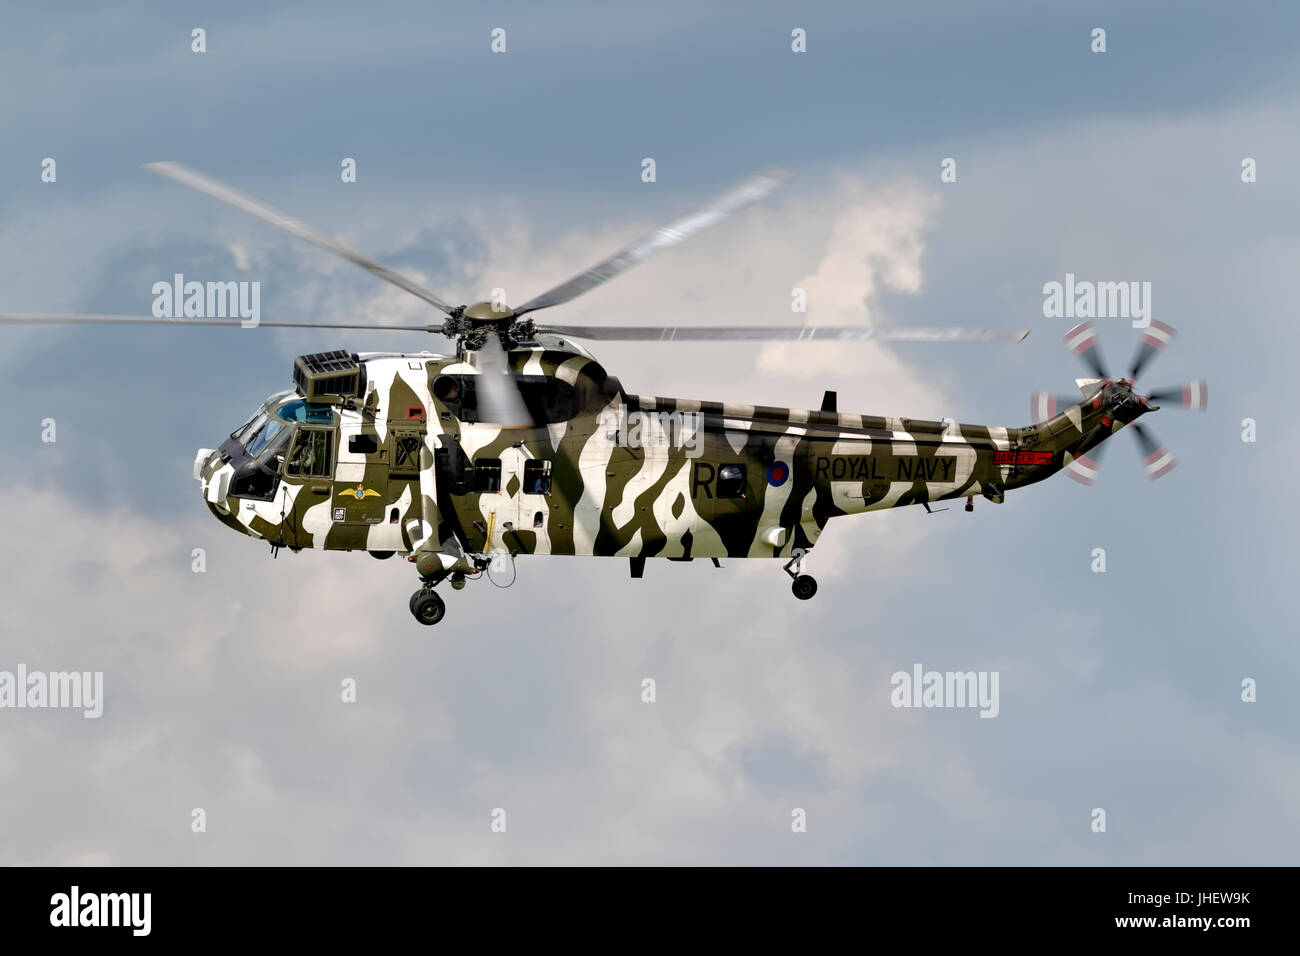 A Royal Navy Westland Sea King HC.4, helicopter at the RNAS Yeovilton International Air Day 2011. - Stock Image